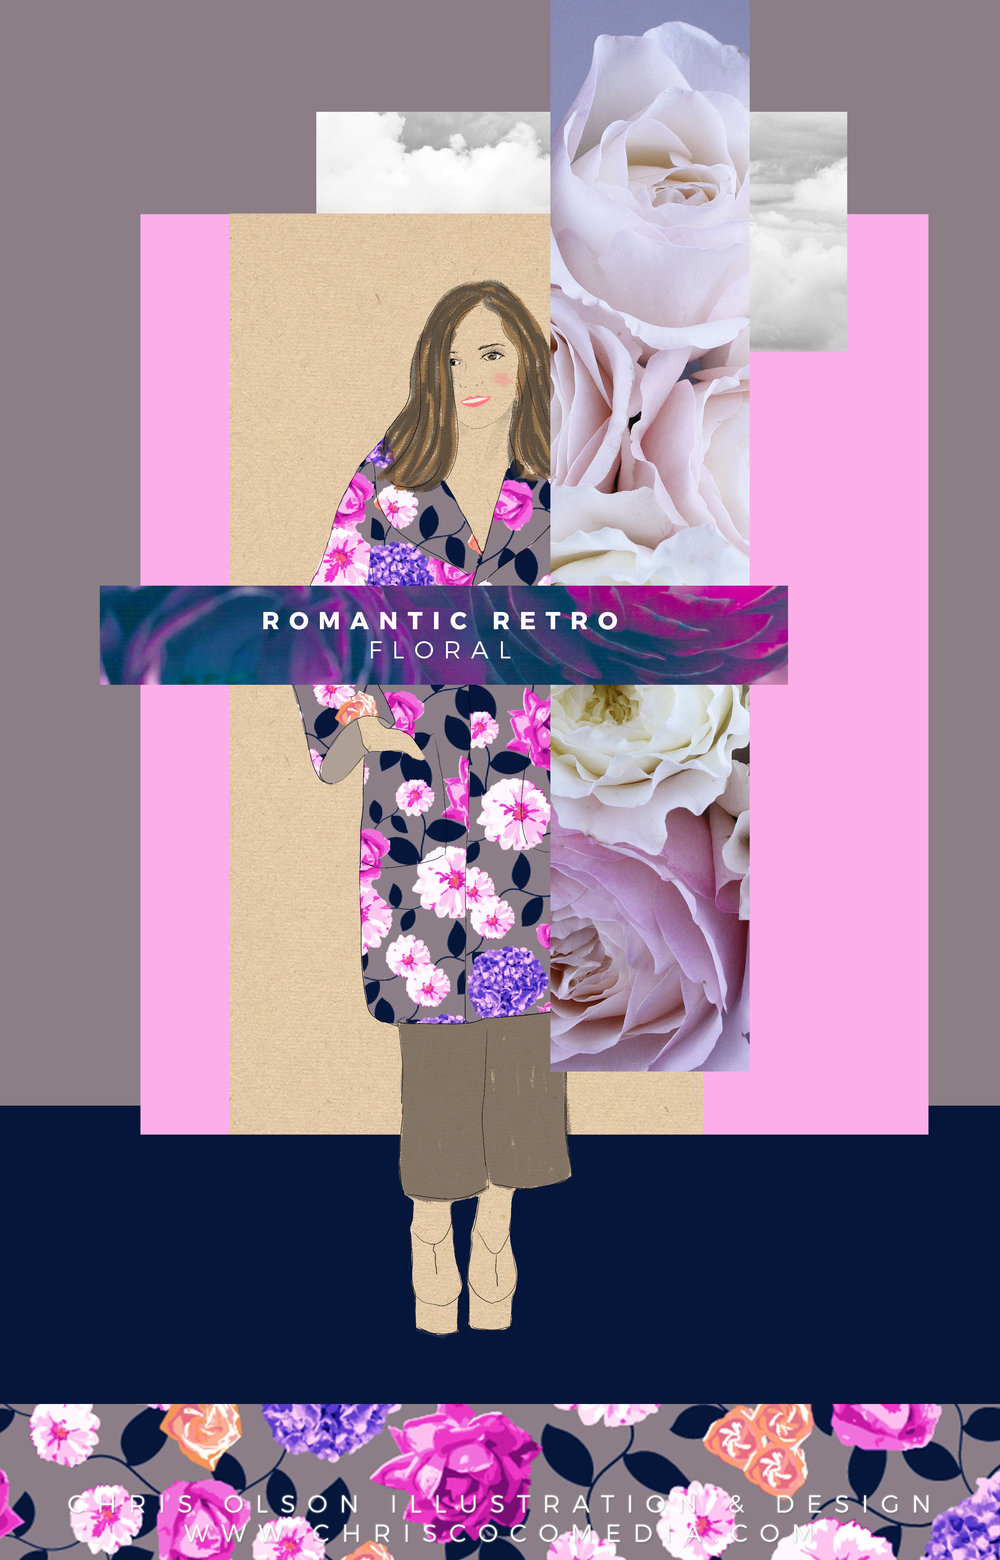 Romantic Retro Floral